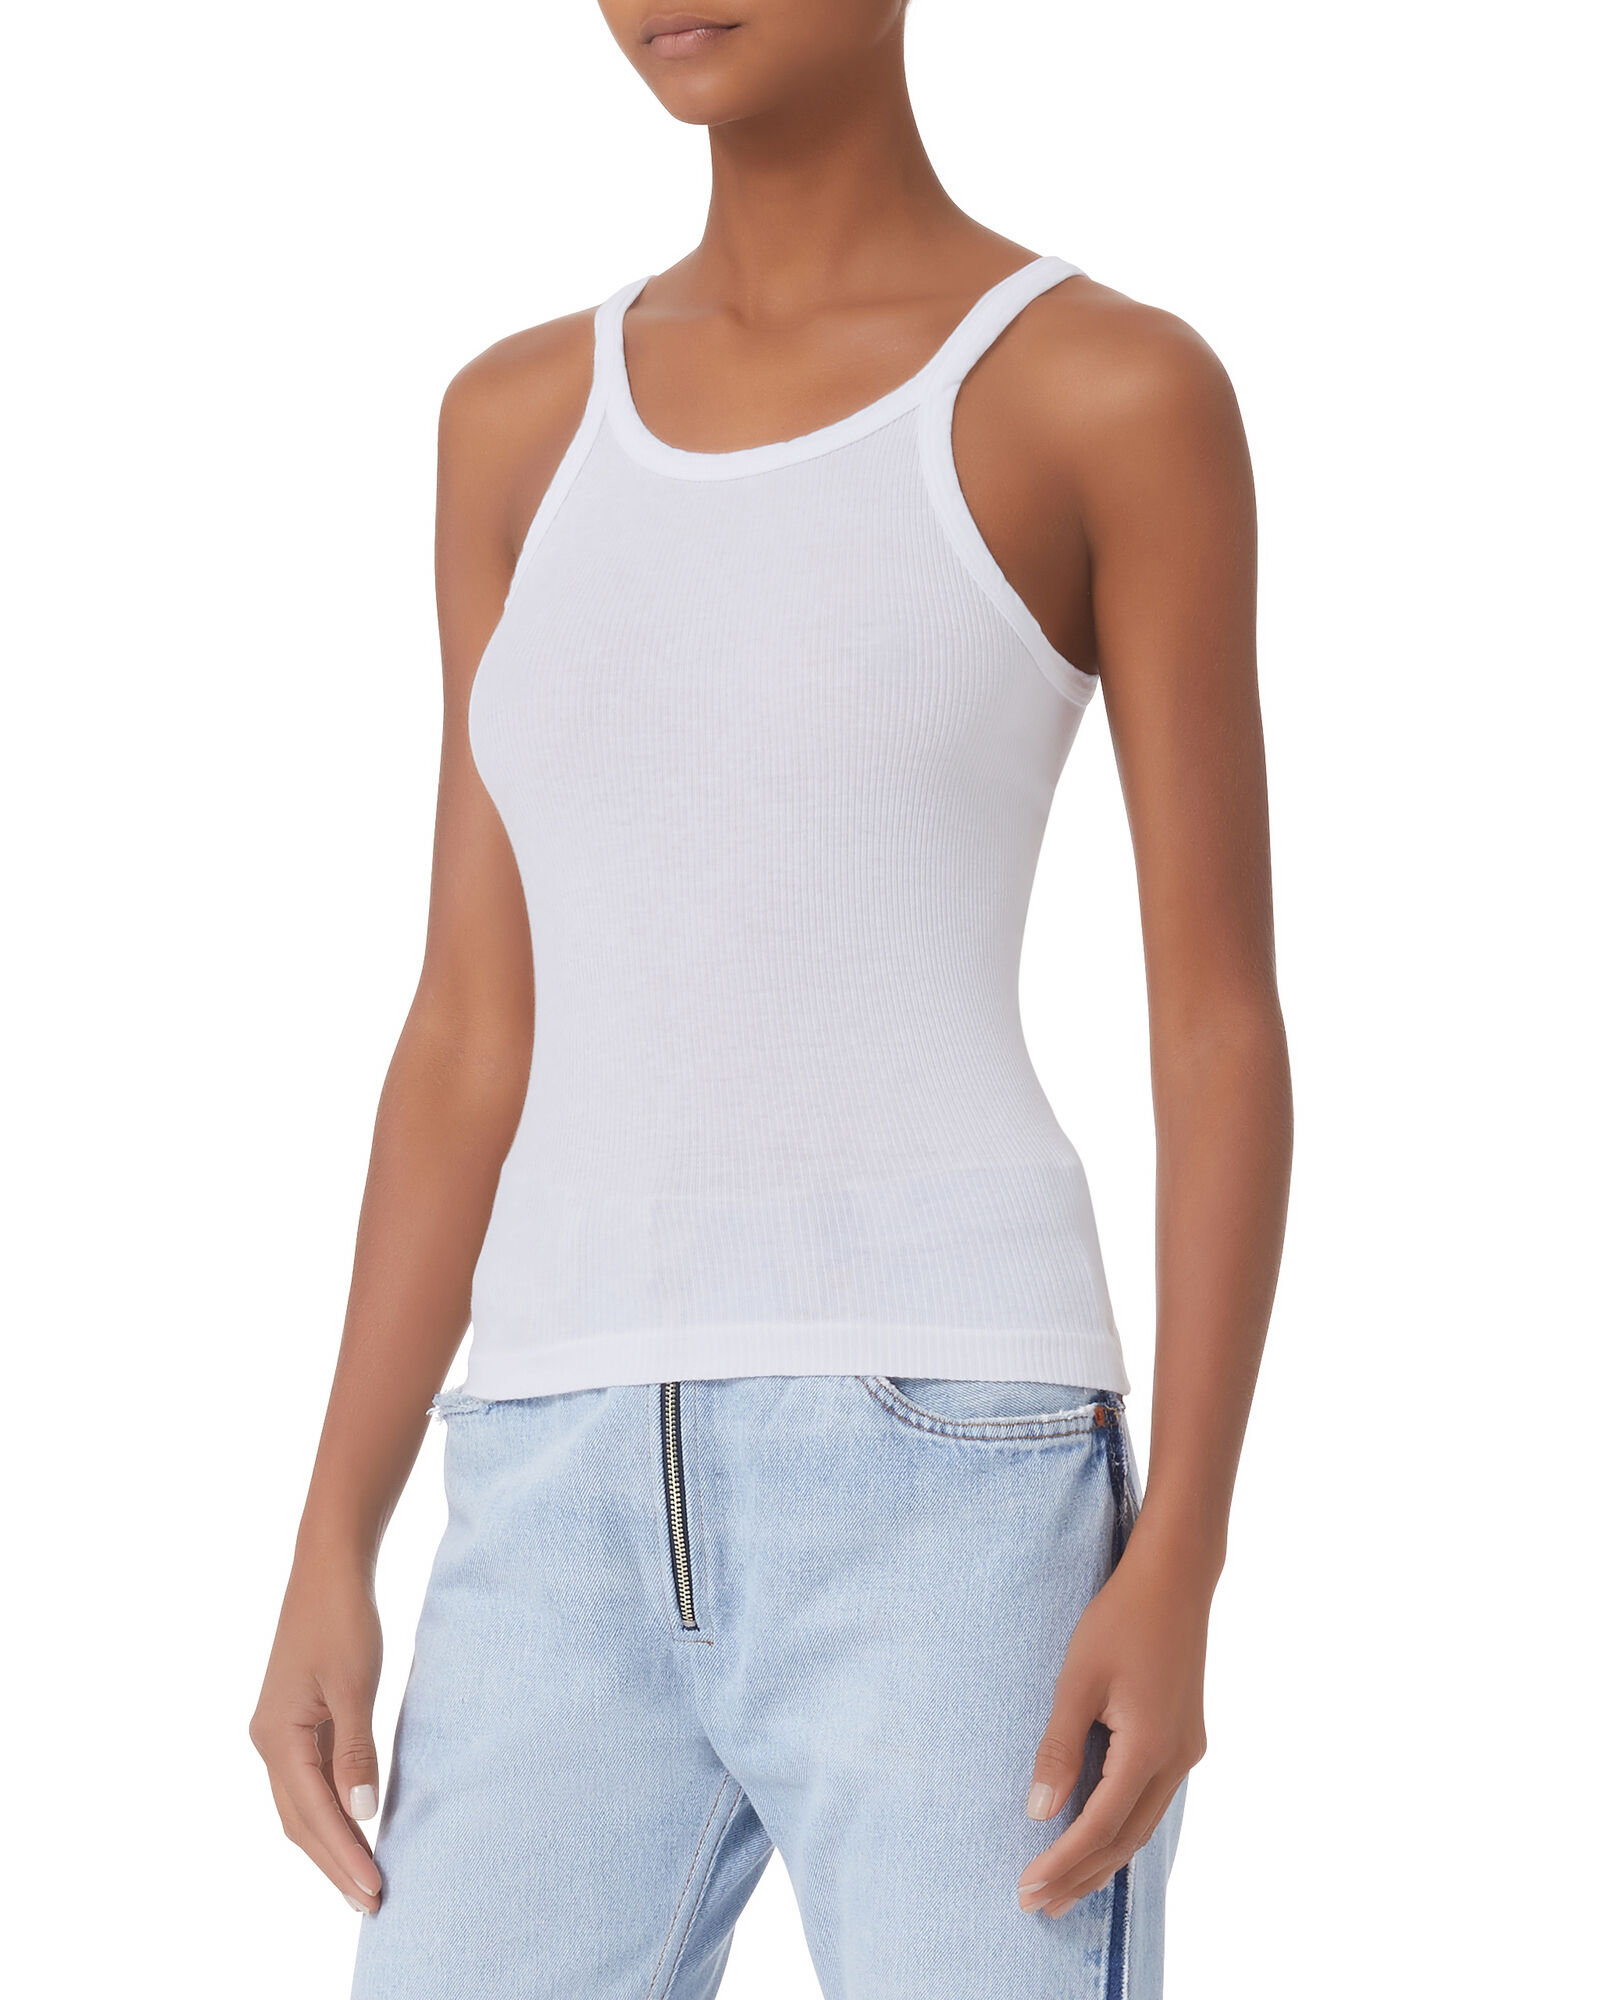 Rib Knit Tank Top, WHITE, hi-res